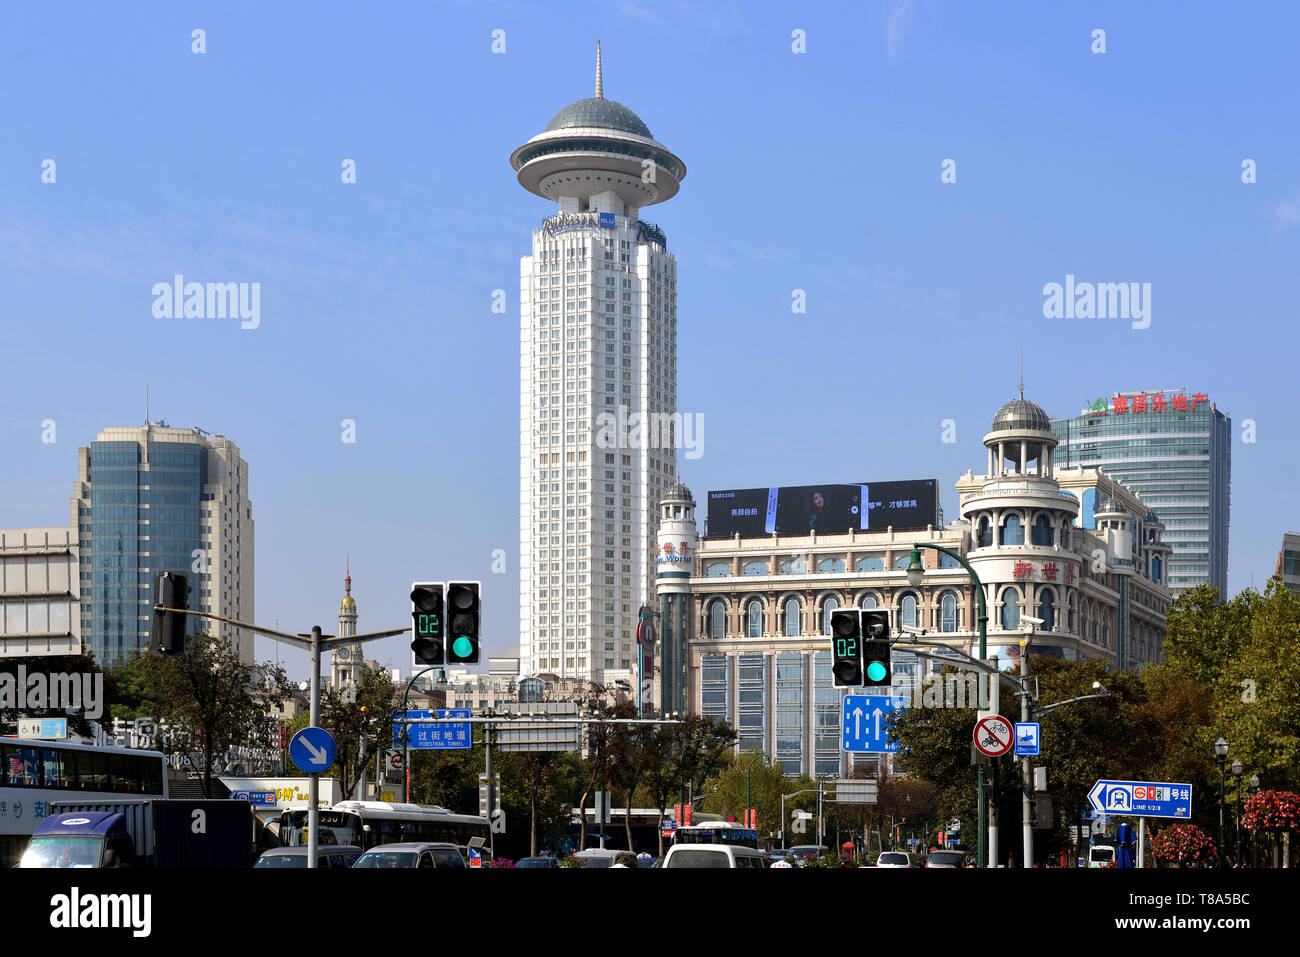 Shanghai, China - November 2, 2017:  View of the People's Square of the Huangpu District, including The Radisson Hotel, and the Shanghai New World Dep - Stock Image